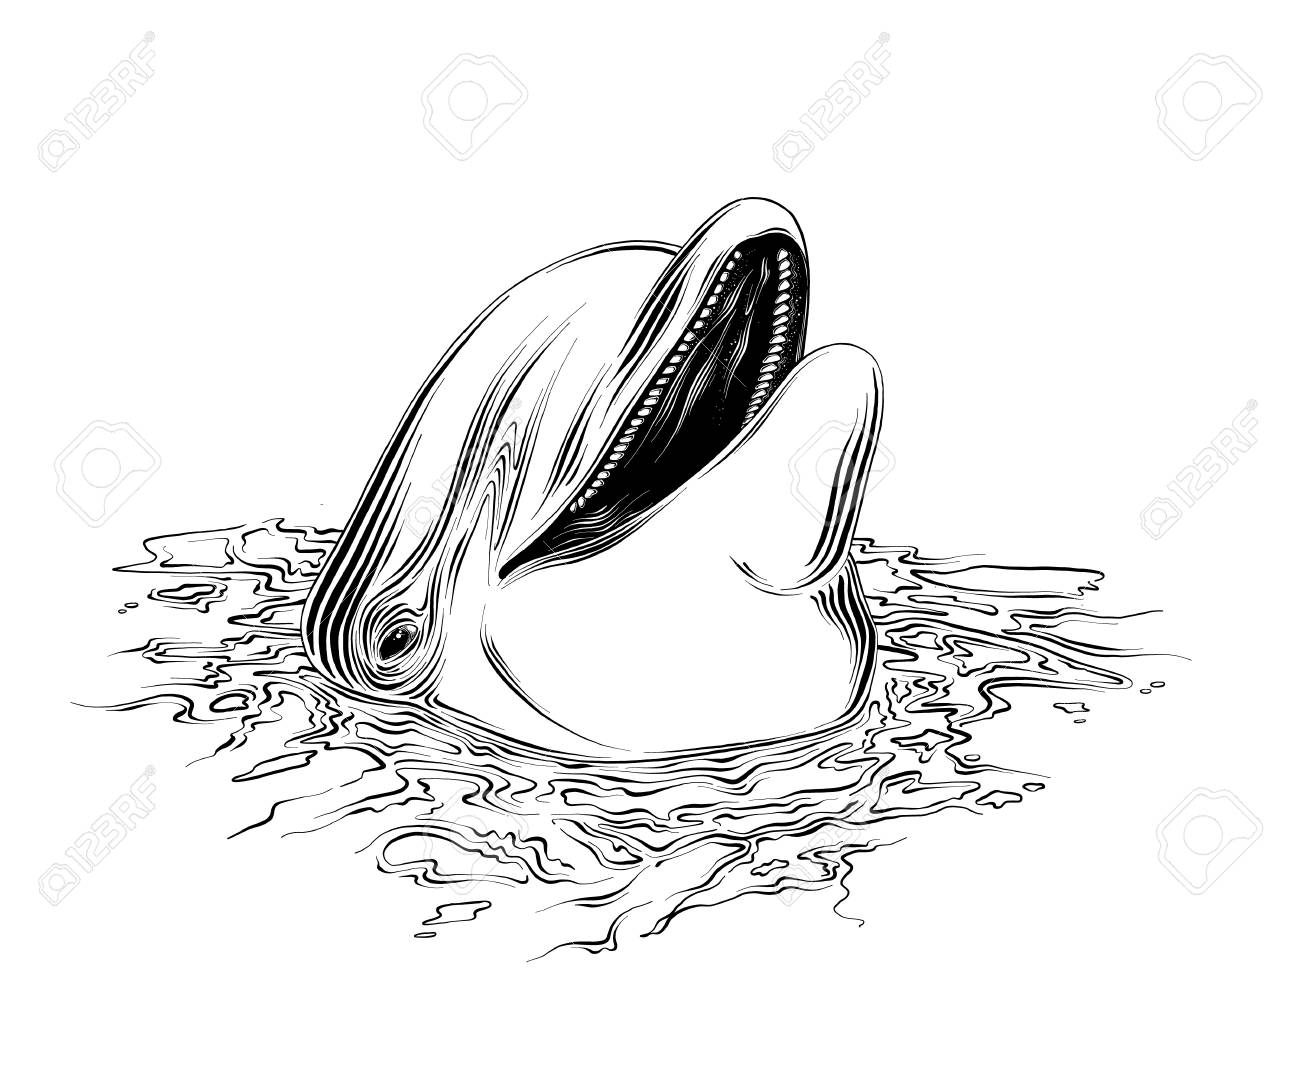 Vector Drawing Of Dolphin In Black Color Isolated On White Background Royalty Free Cliparts Vectors And Stock Illustration Image 121873313